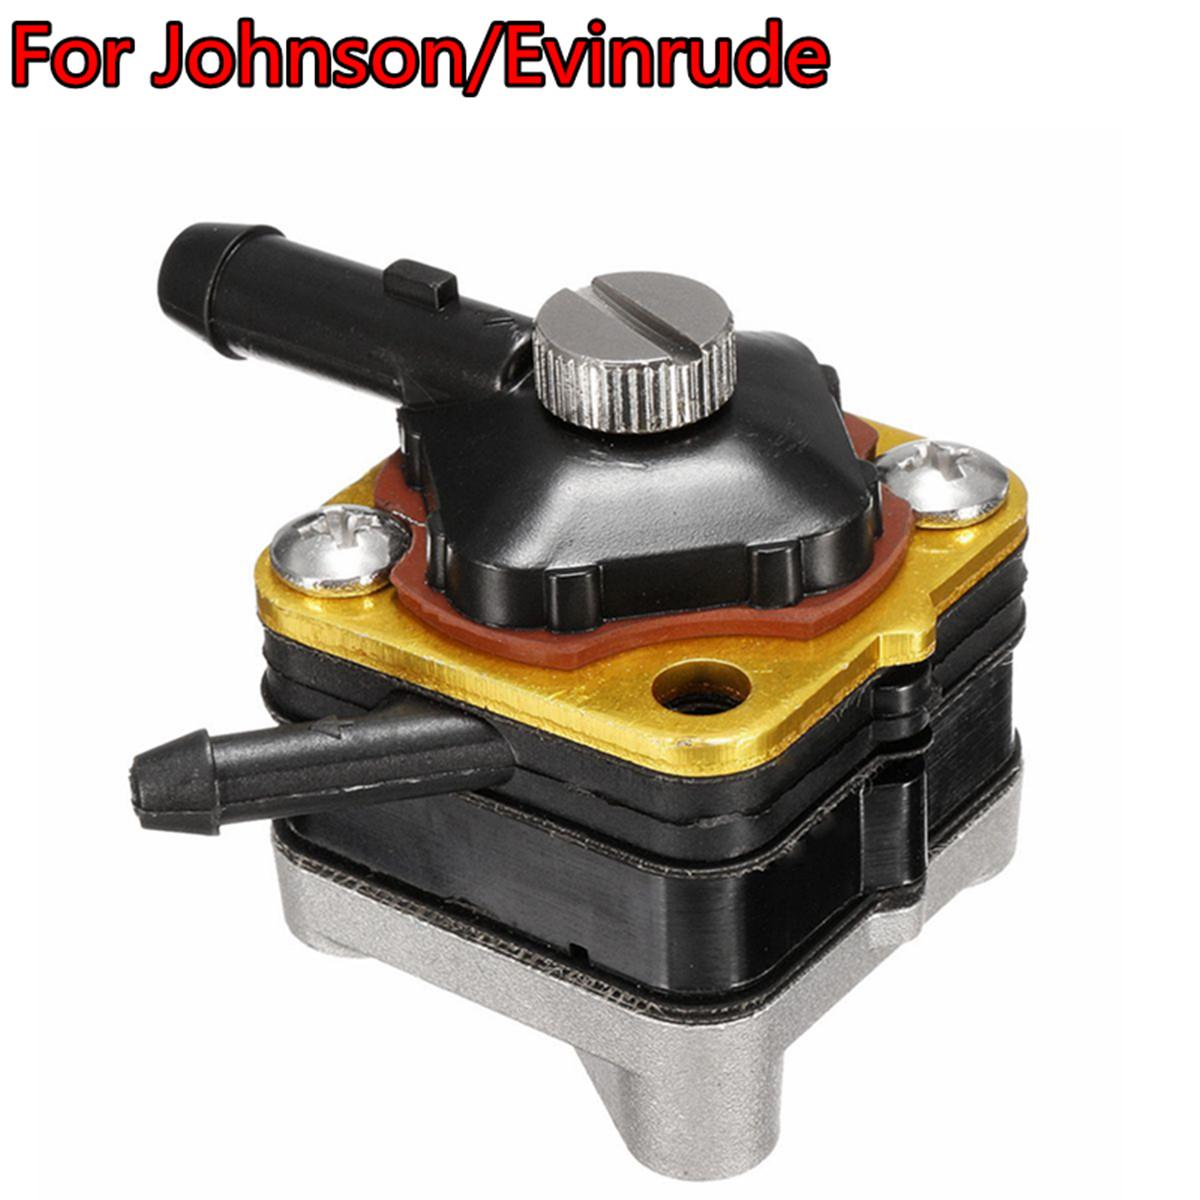 hight resolution of 2019 outboard fuel pump assembly for johnson evinrude 6hp 9 9hp 15hp pre 1993 397839 engine motor from renhuai888 50 3 dhgate com